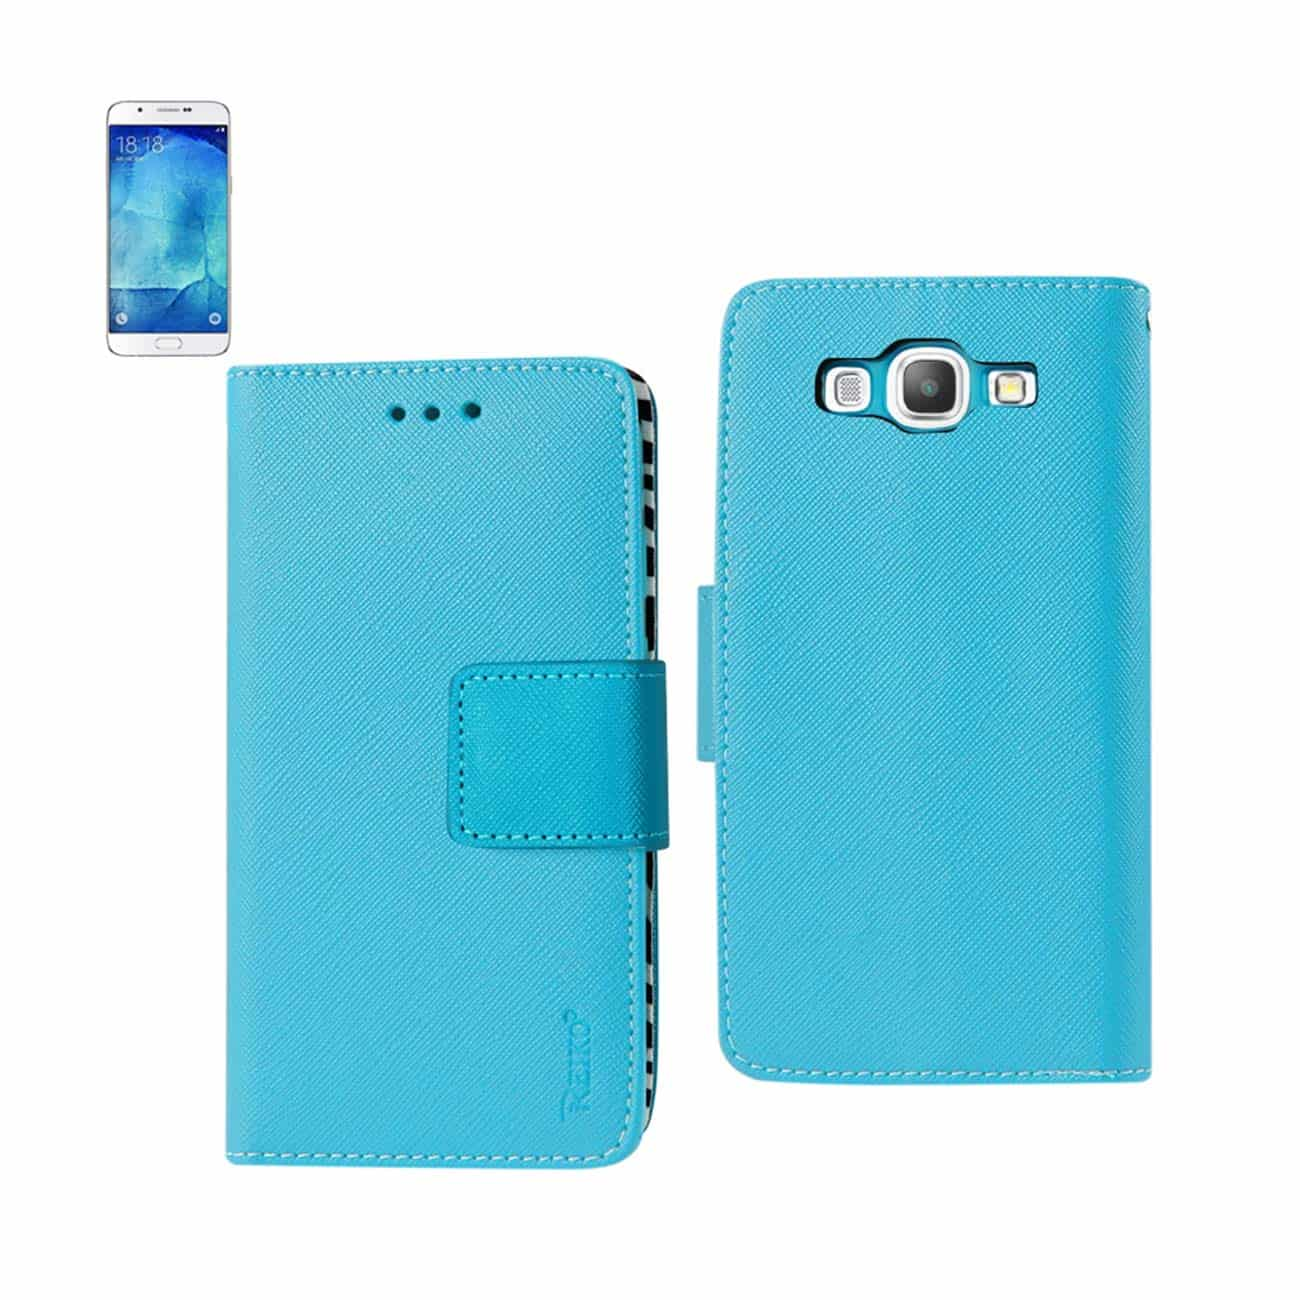 SAMSUNG GALAXY A8 3-IN-1 WALLET CASE WITH INNER ZEBRA PRINT IN BLUE